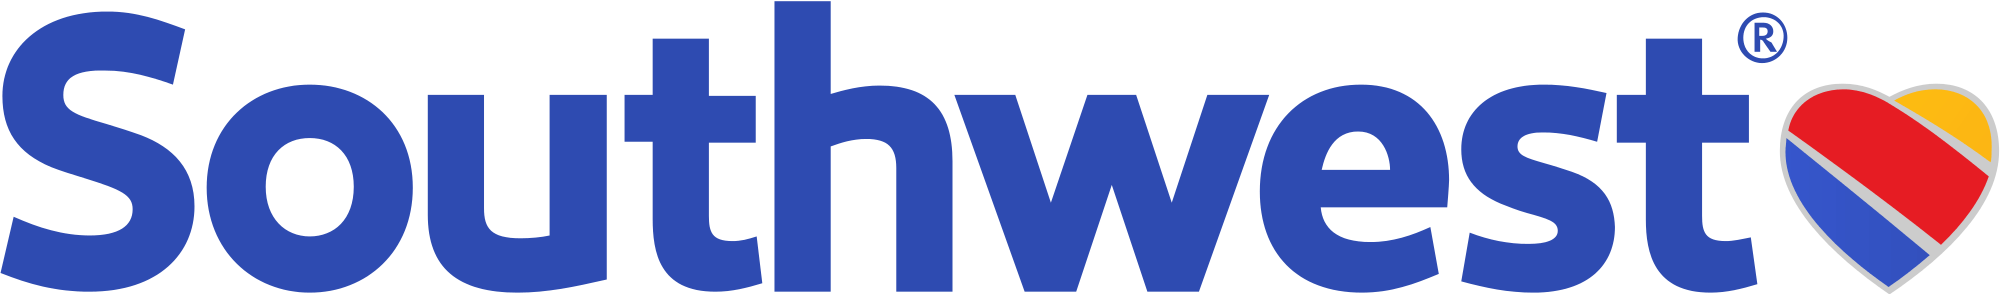 Southwest_Airlines_logo_2014